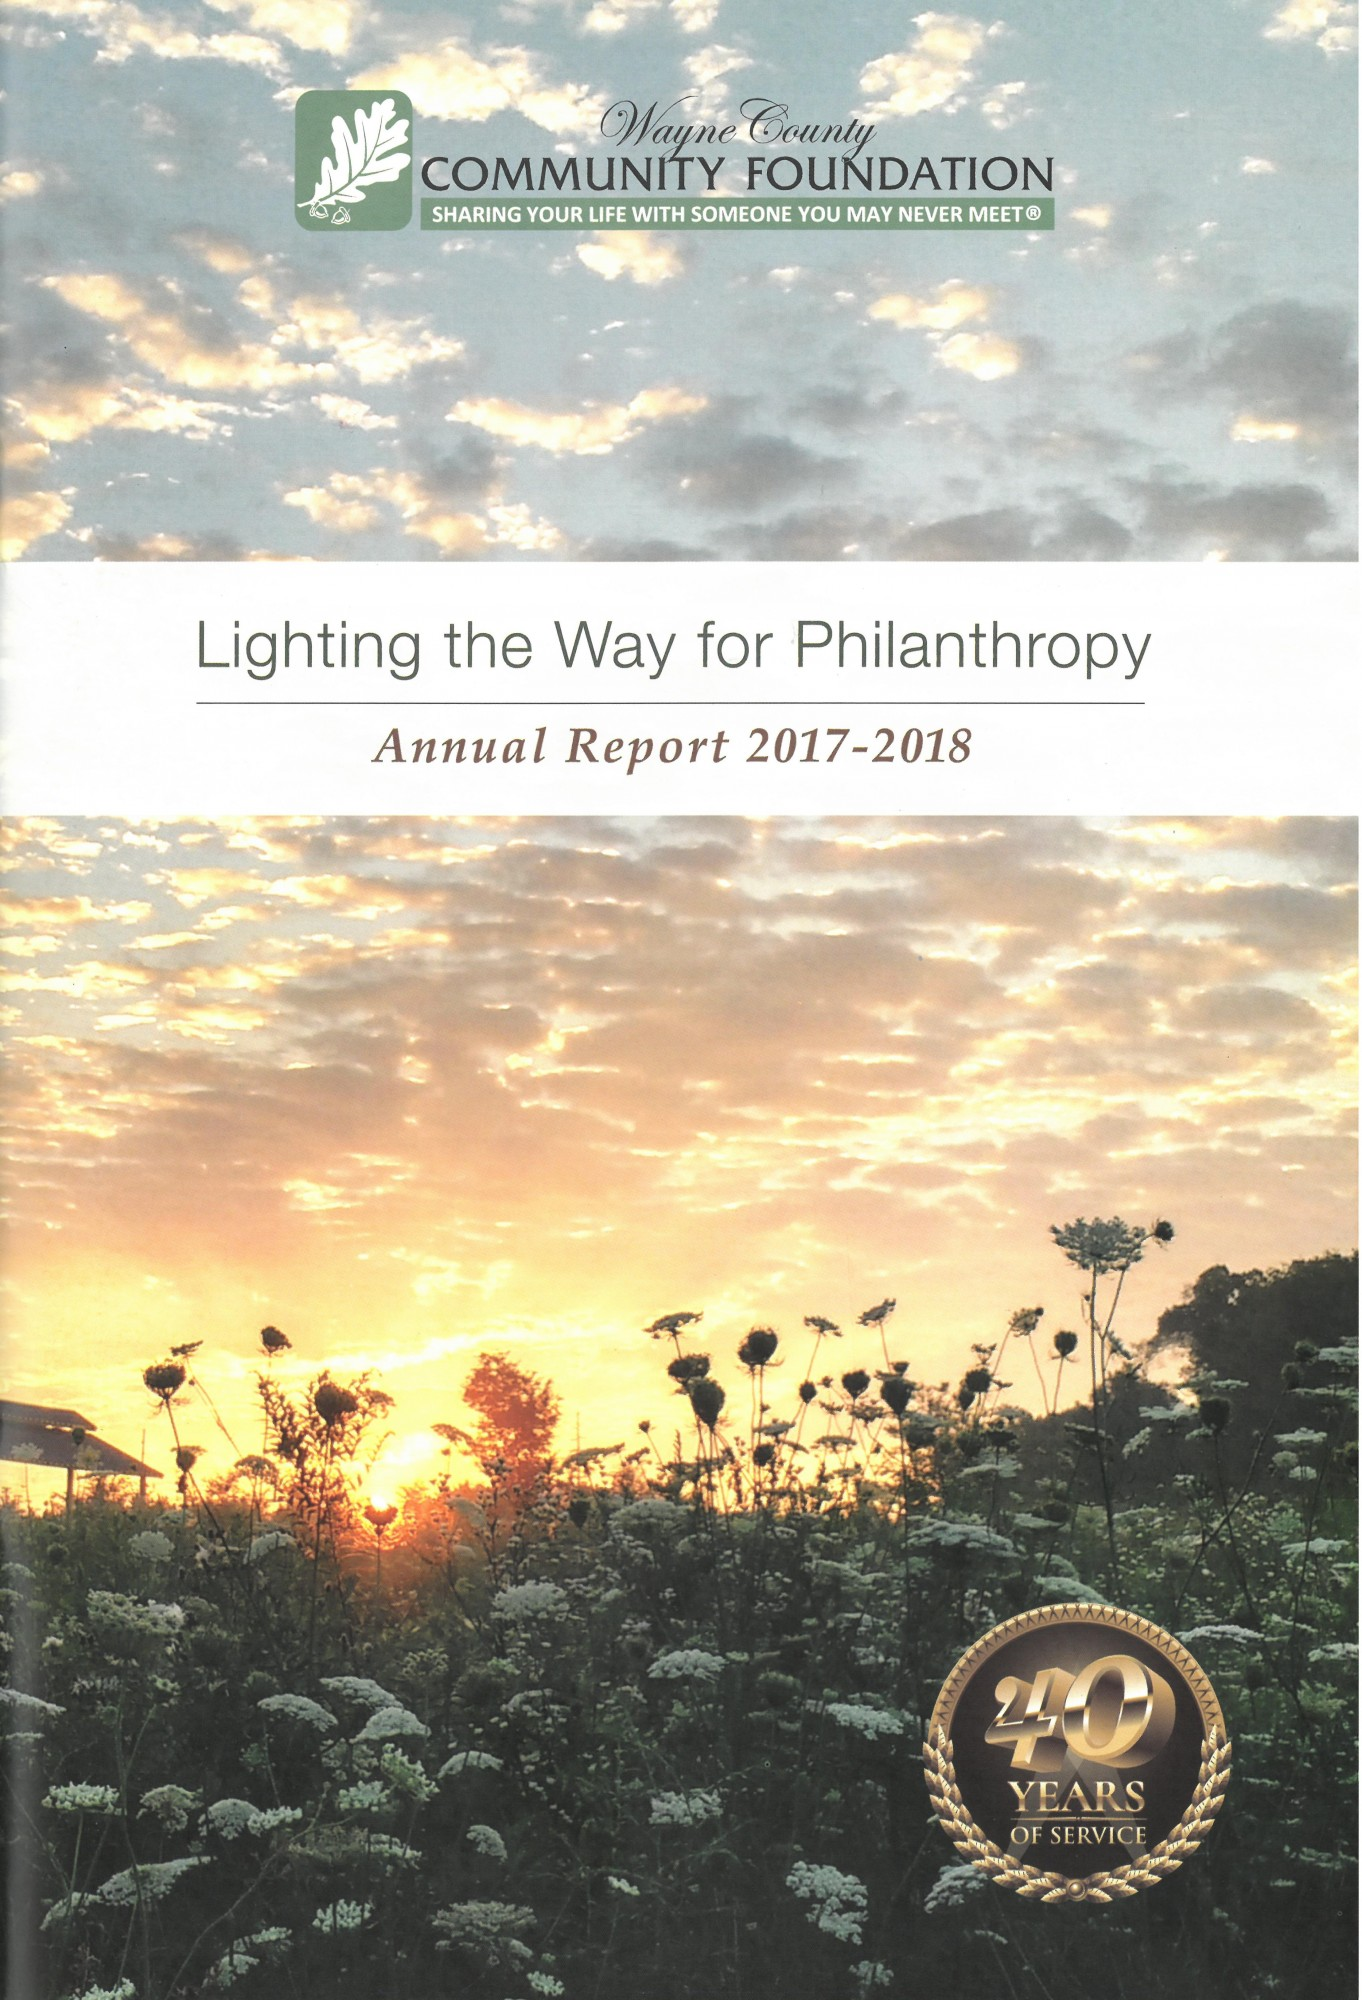 WCCF 2017-2018 Annual Report